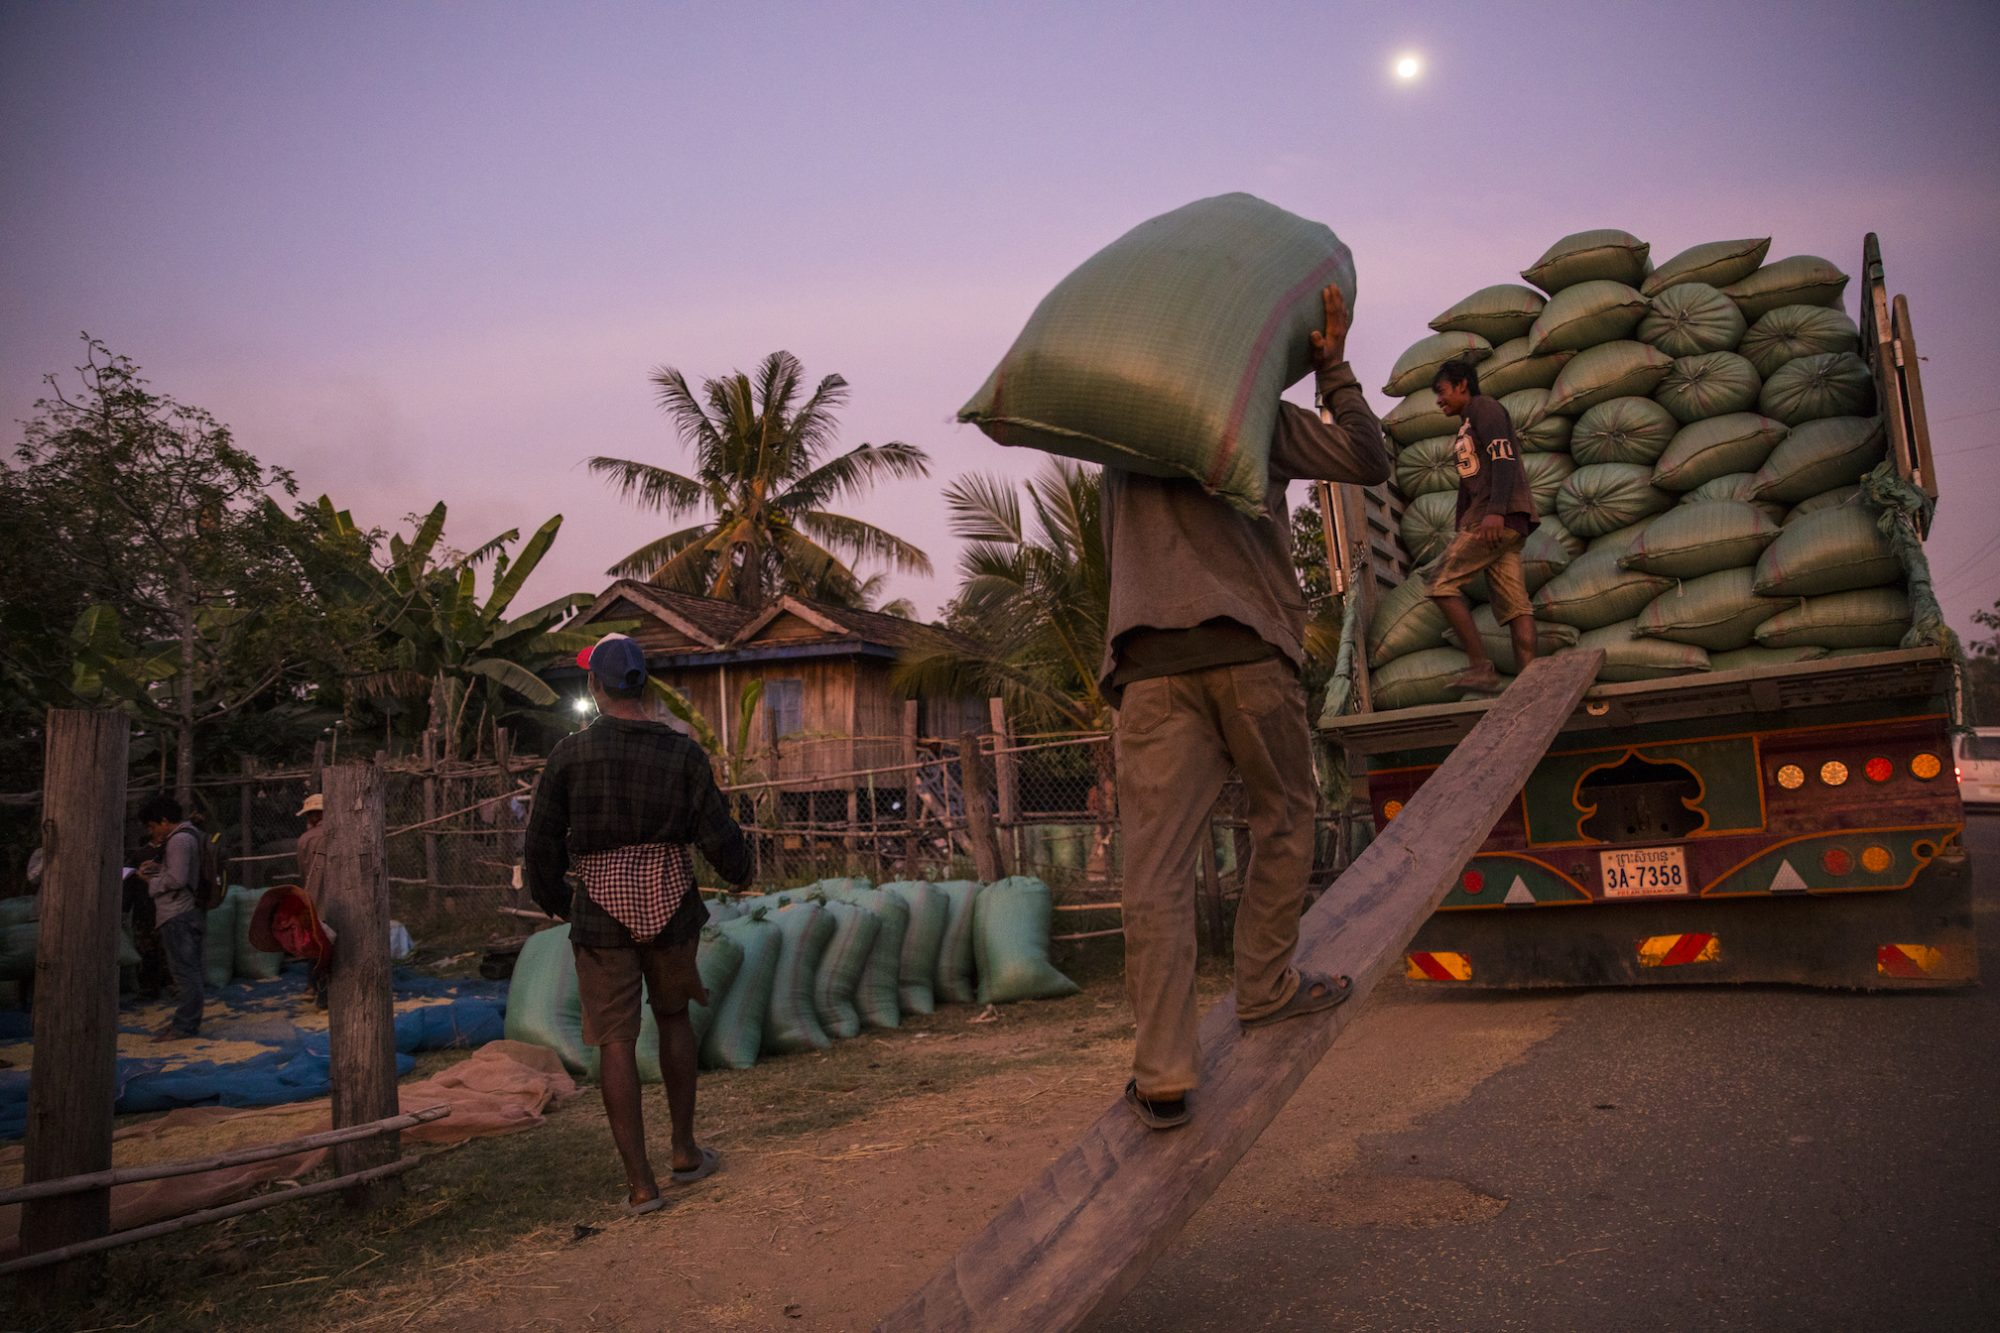 After dusk, a man loads rice onto a truck laden with dozens of other huge green bags